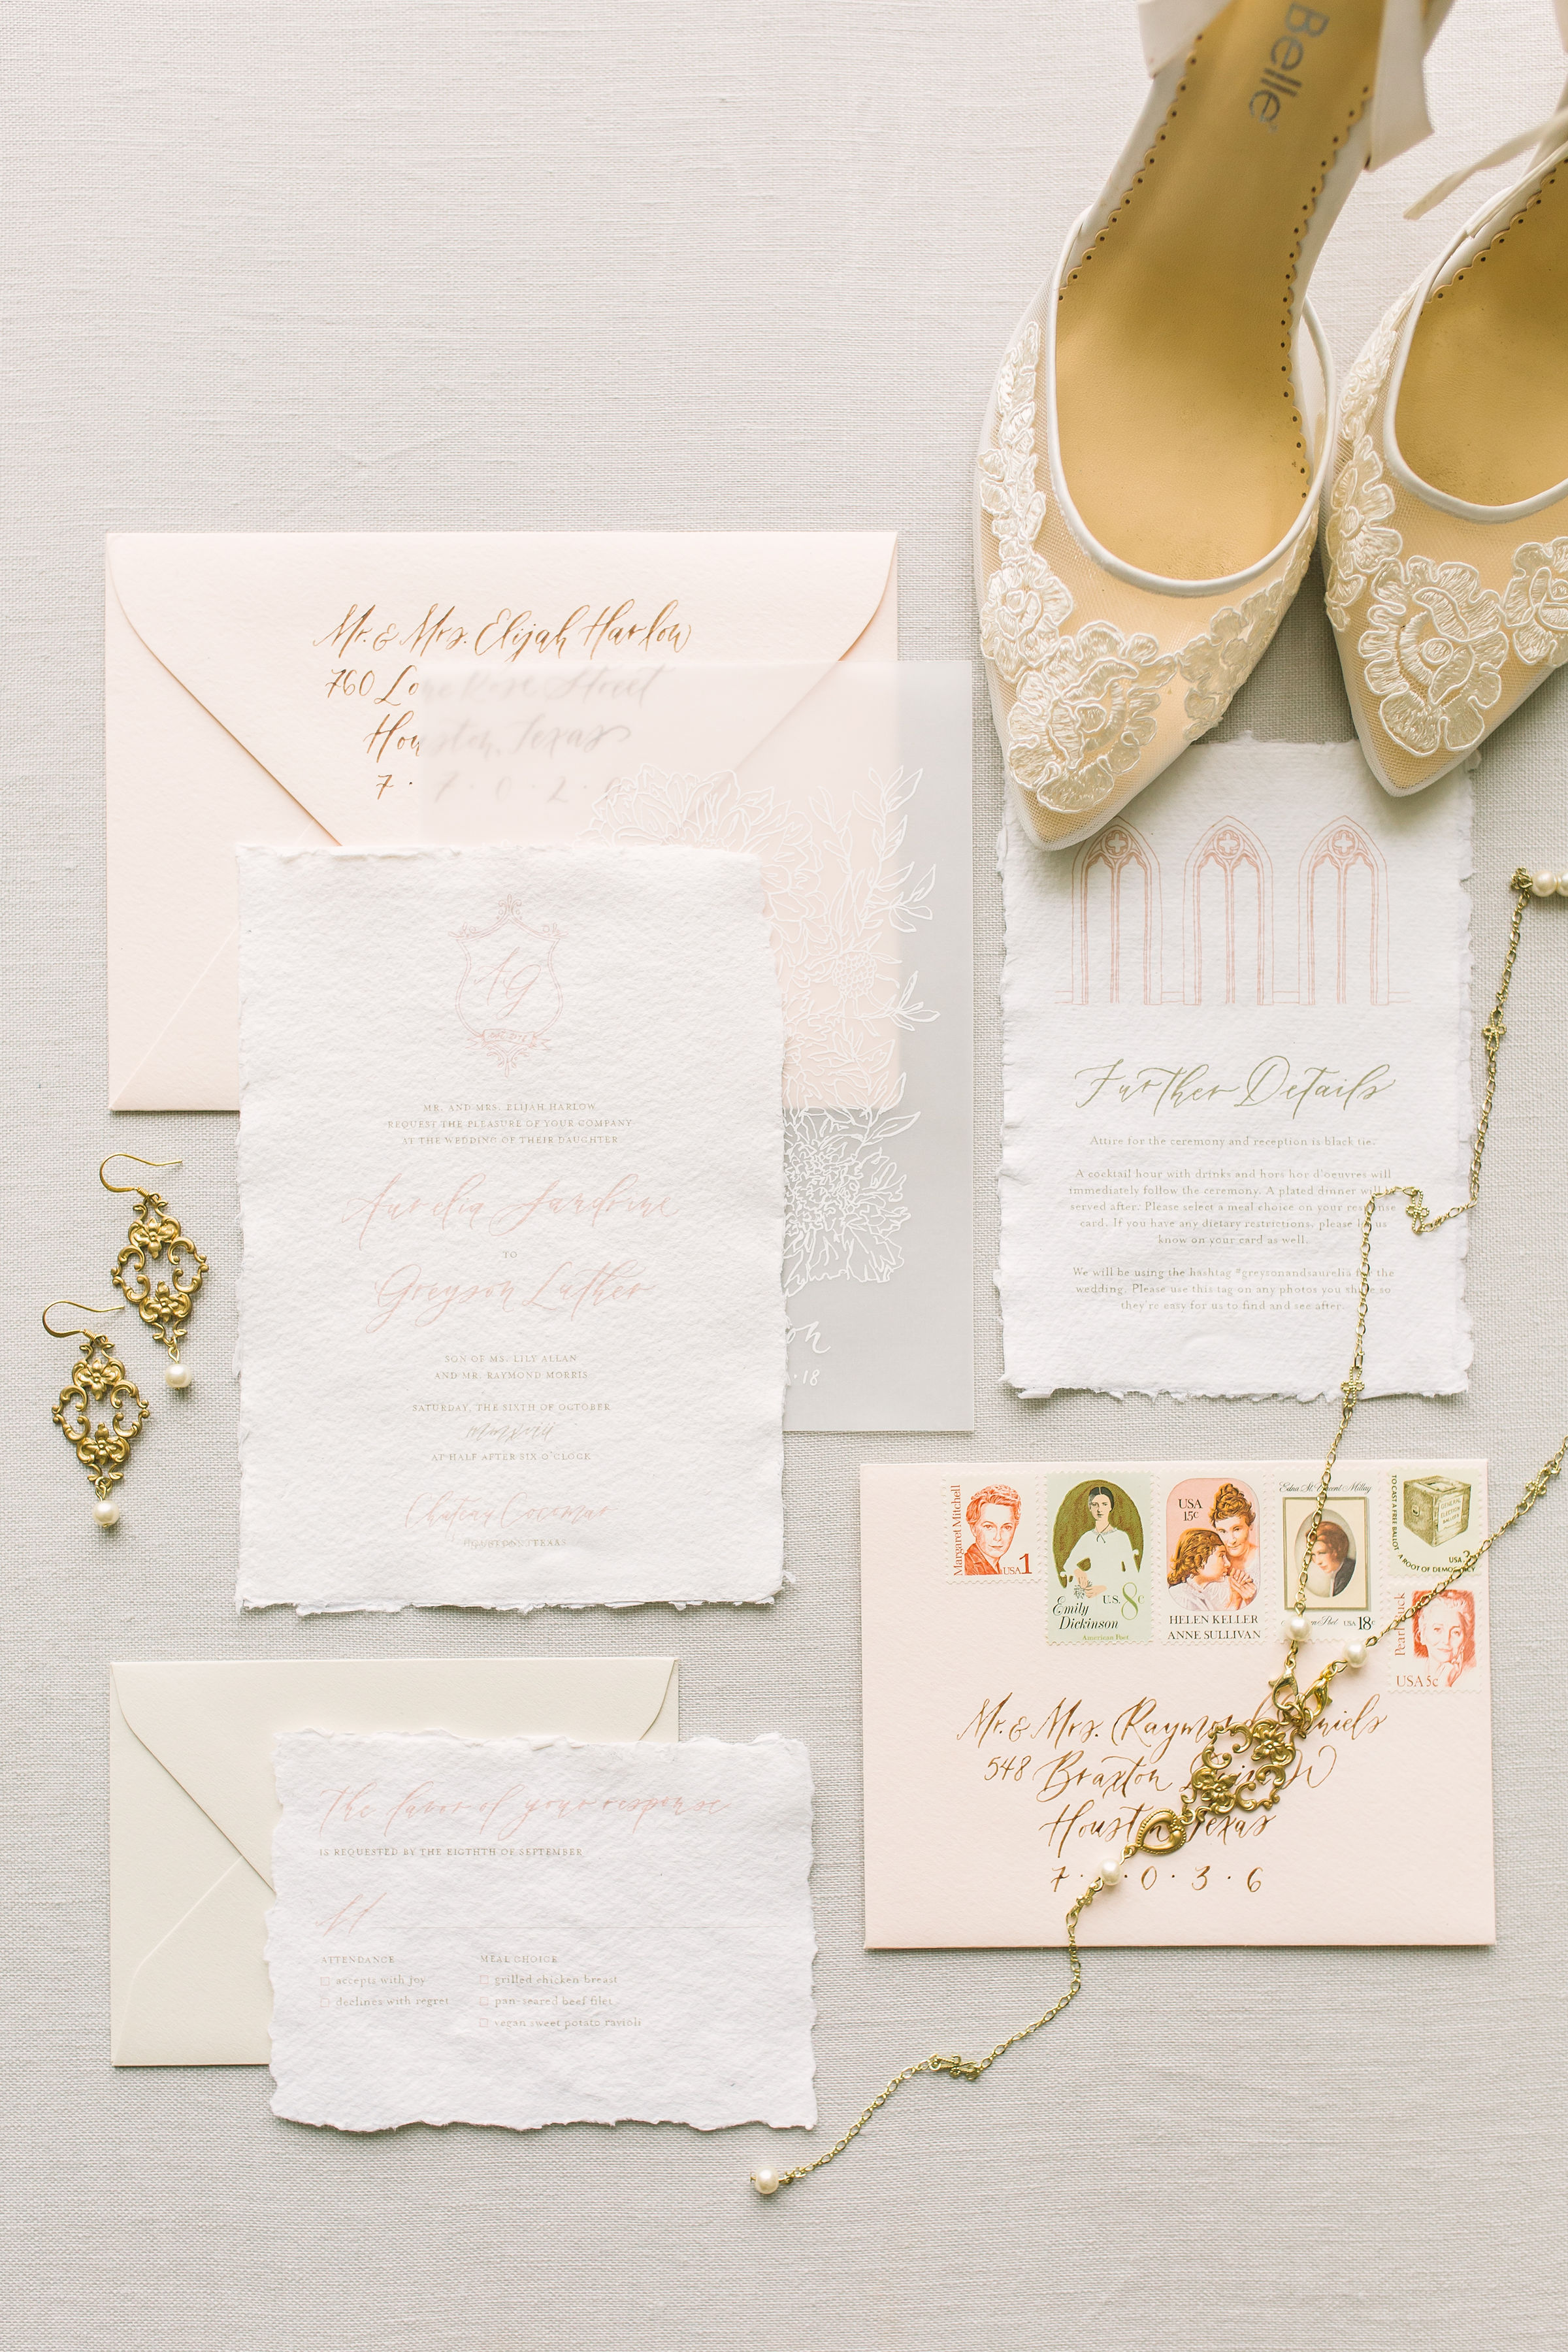 Fine Art Custom Wedding Invitations and Calligraphy by Caitlin O'Bryant Design. Photo by Kate Elizabeth Photography.